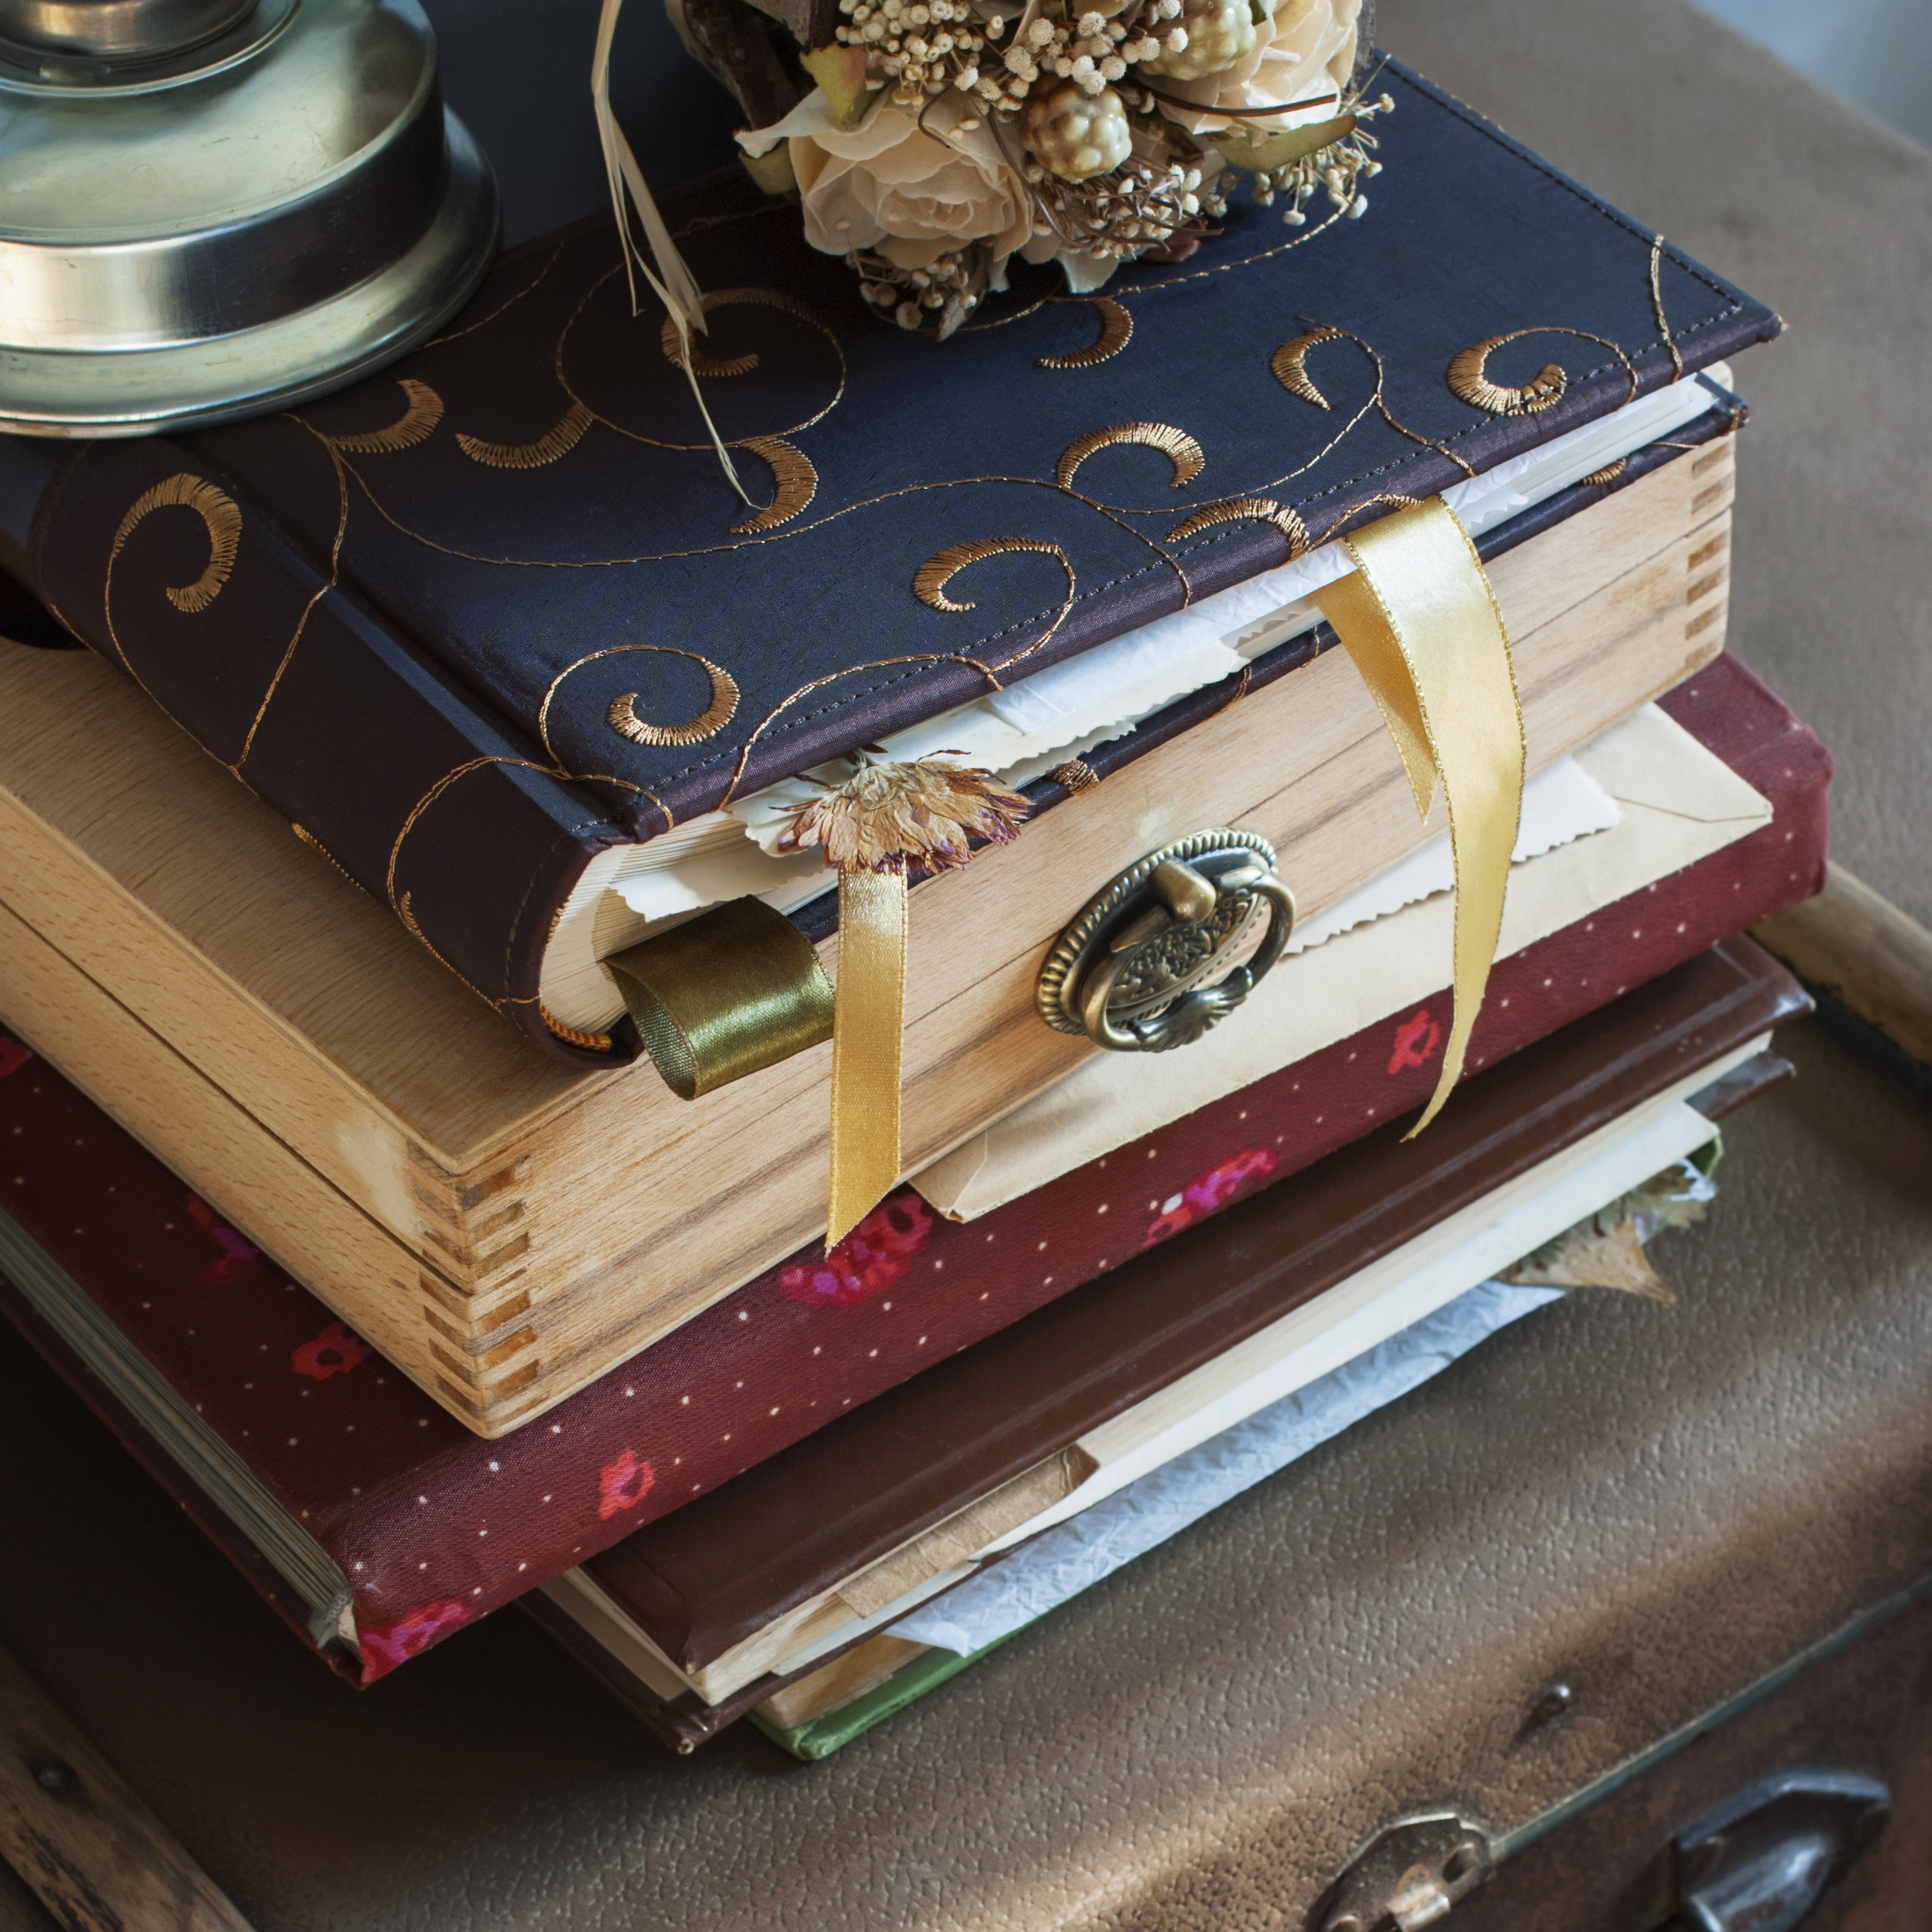 Old Vintage Albums with photos, bookmark and dry plants, square